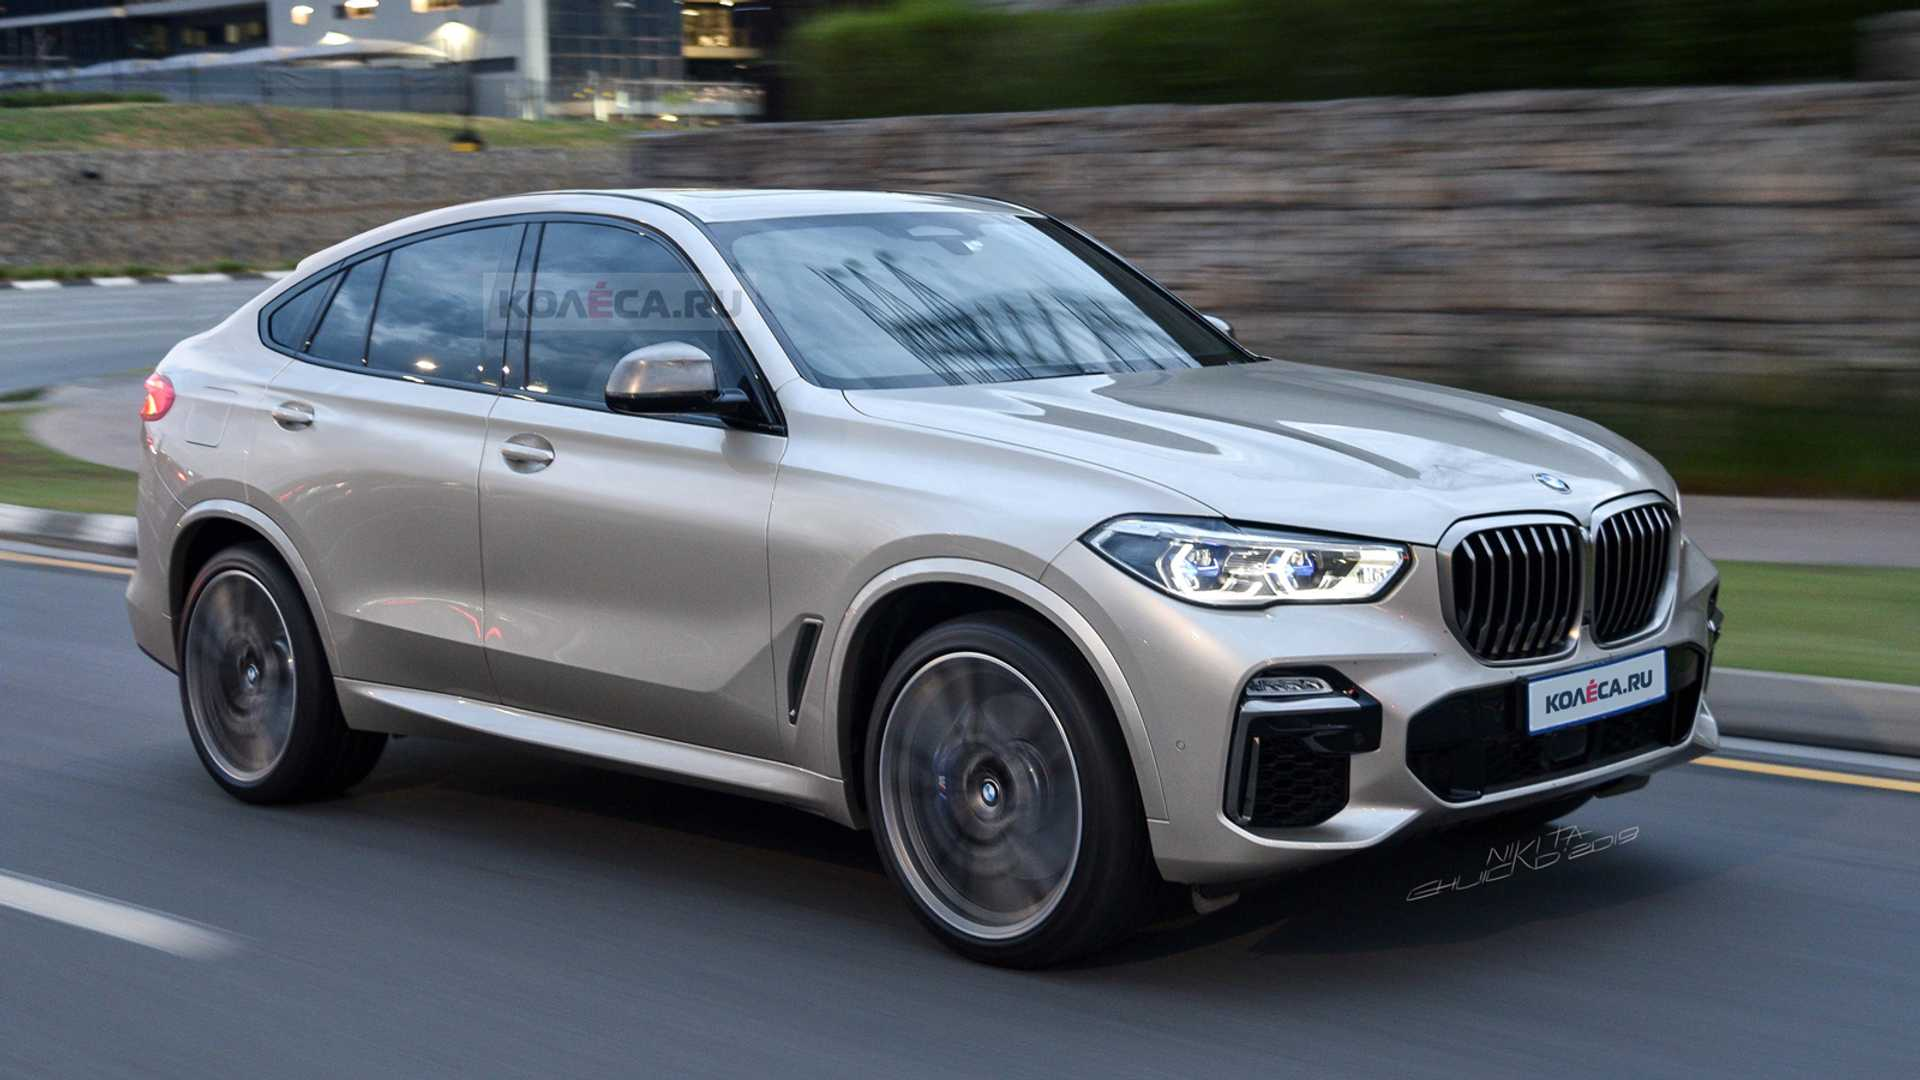 61 New When Will 2020 BMW X6 Be Available Exterior